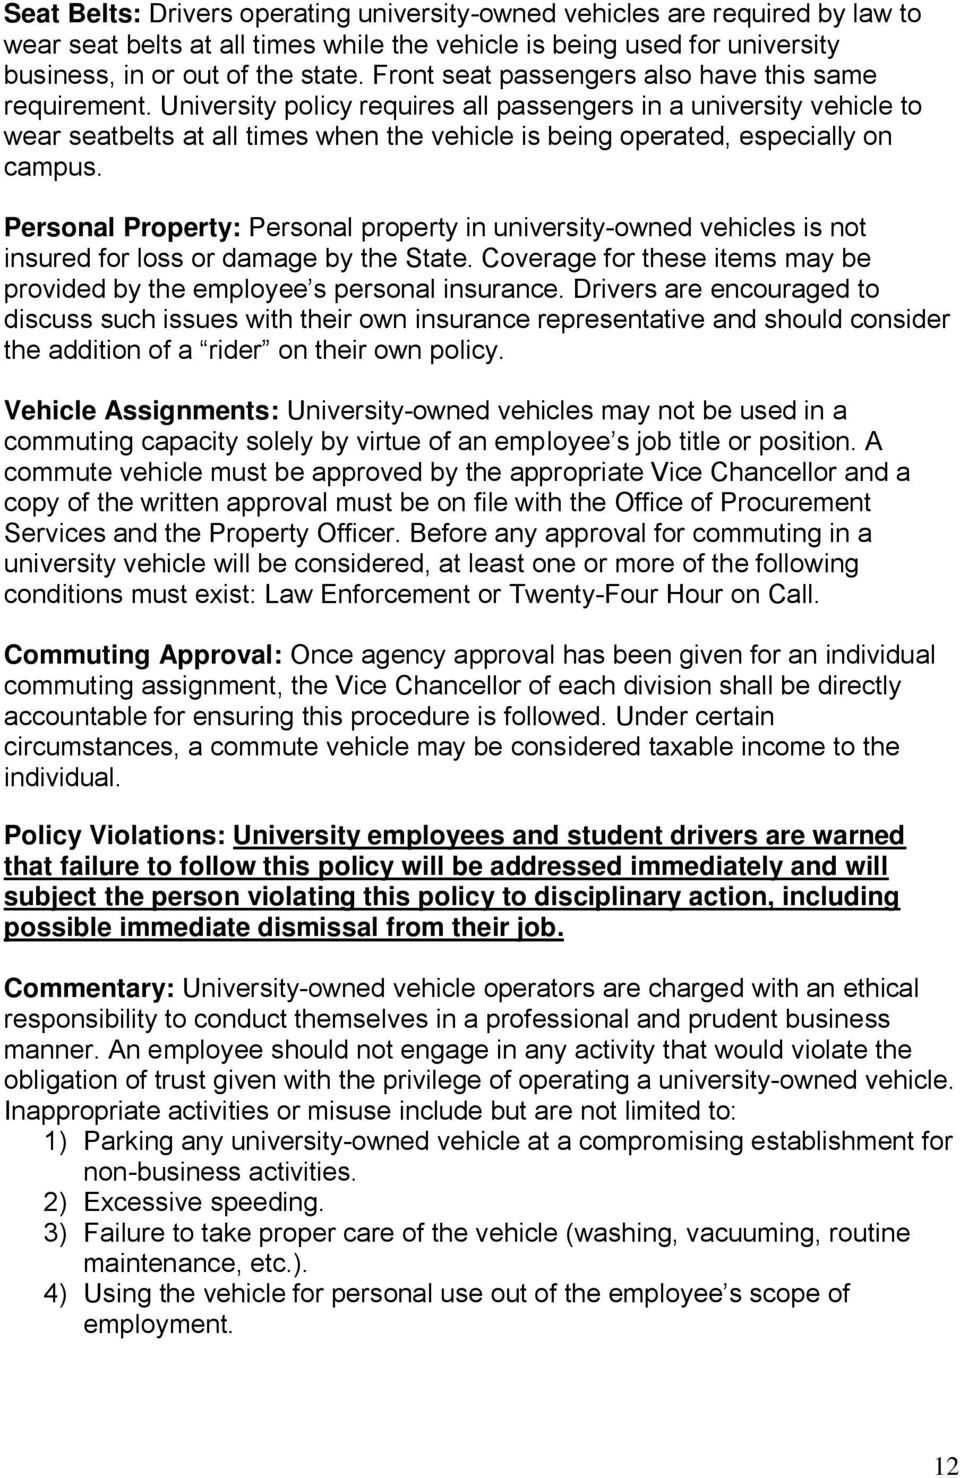 University policy requires all passengers in a university vehicle to wear seatbelts at all times when the vehicle is being operated, especially on campus.